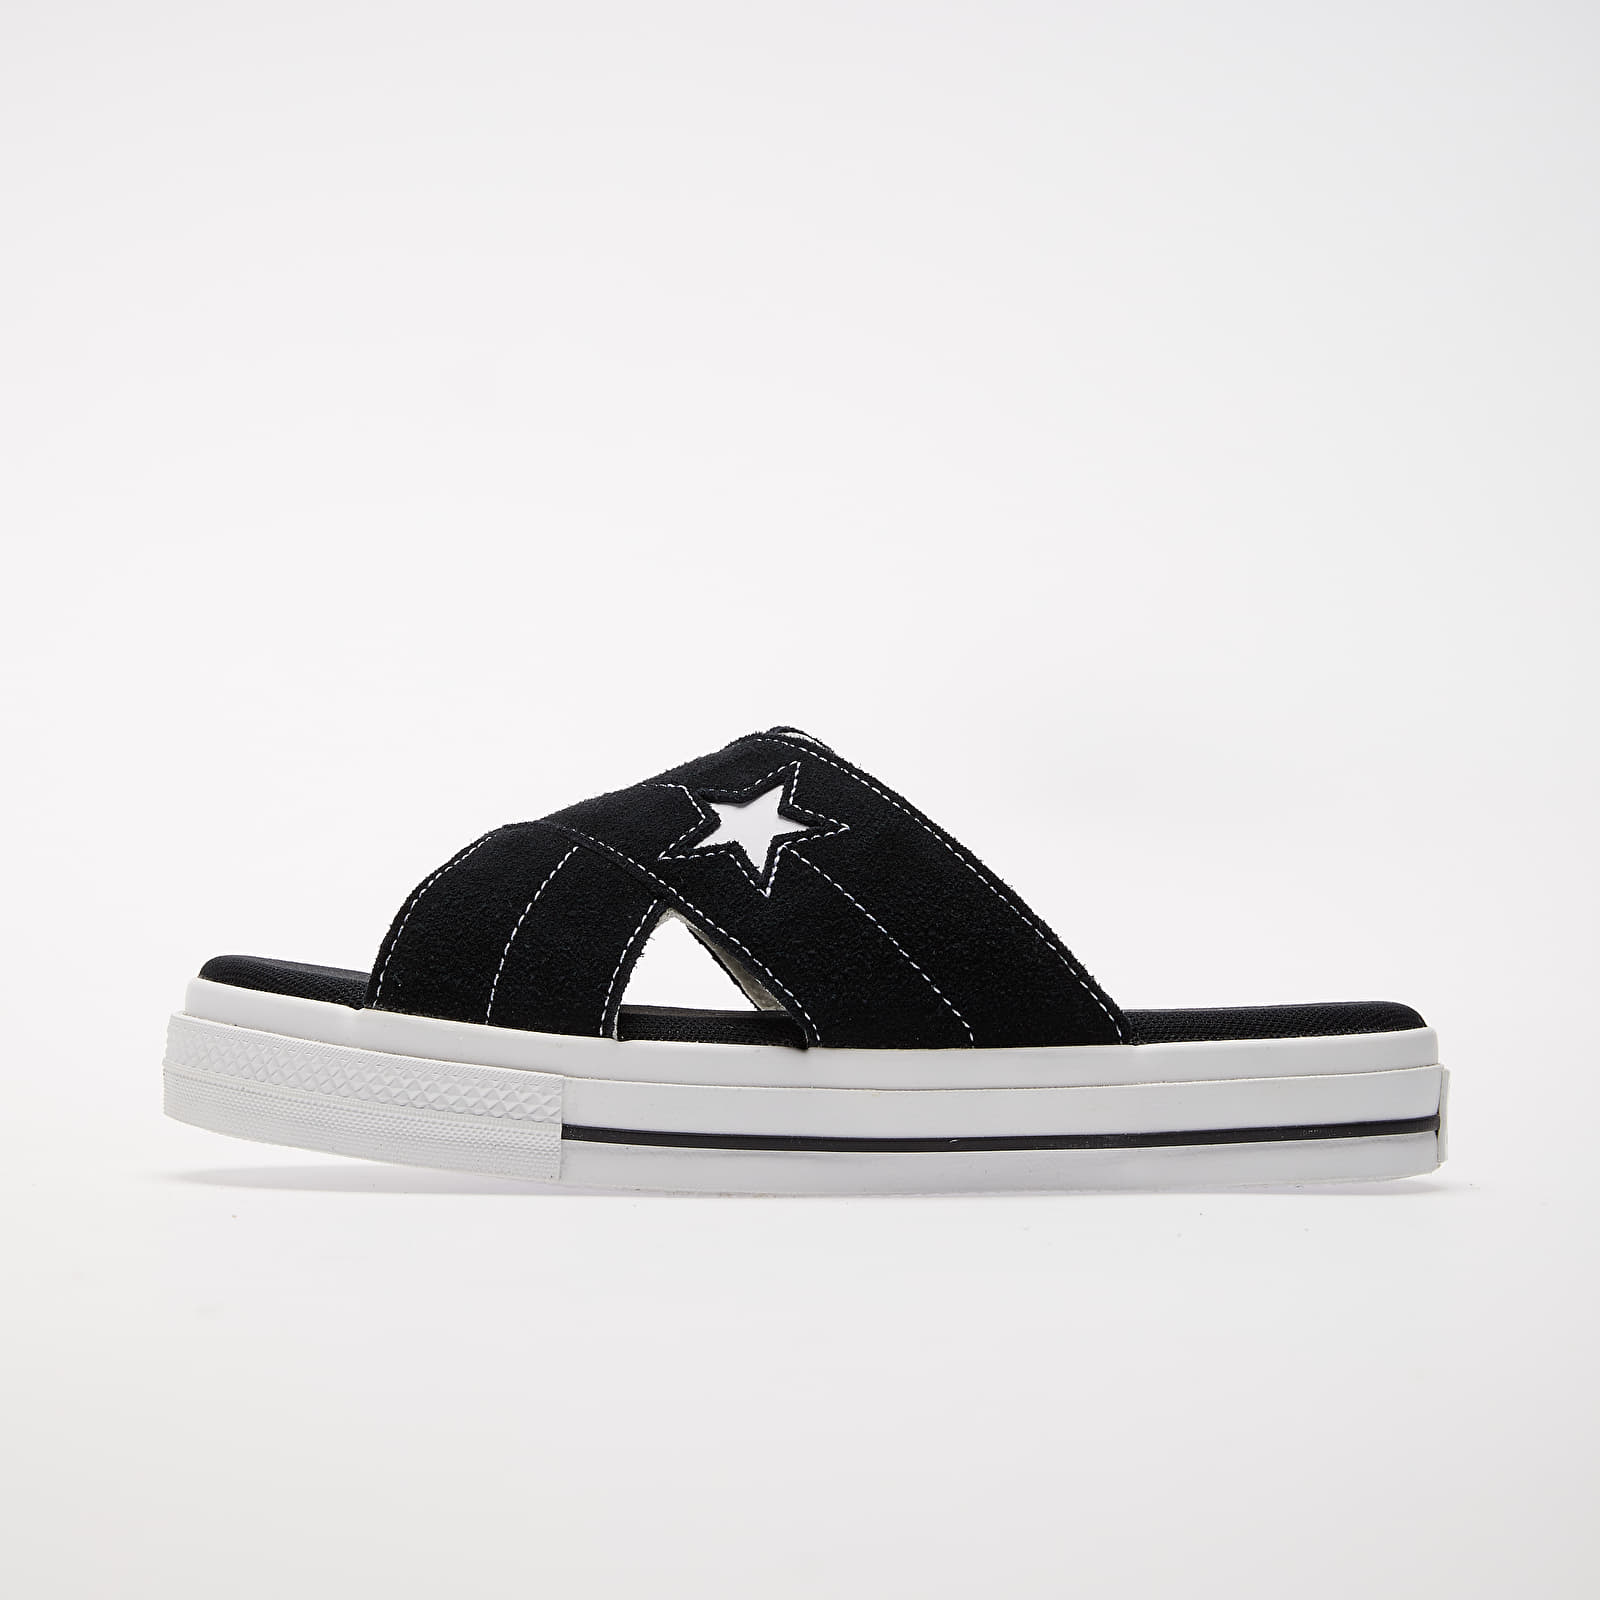 Women's shoes Converse One Star Sandal Black/ Egret/ White